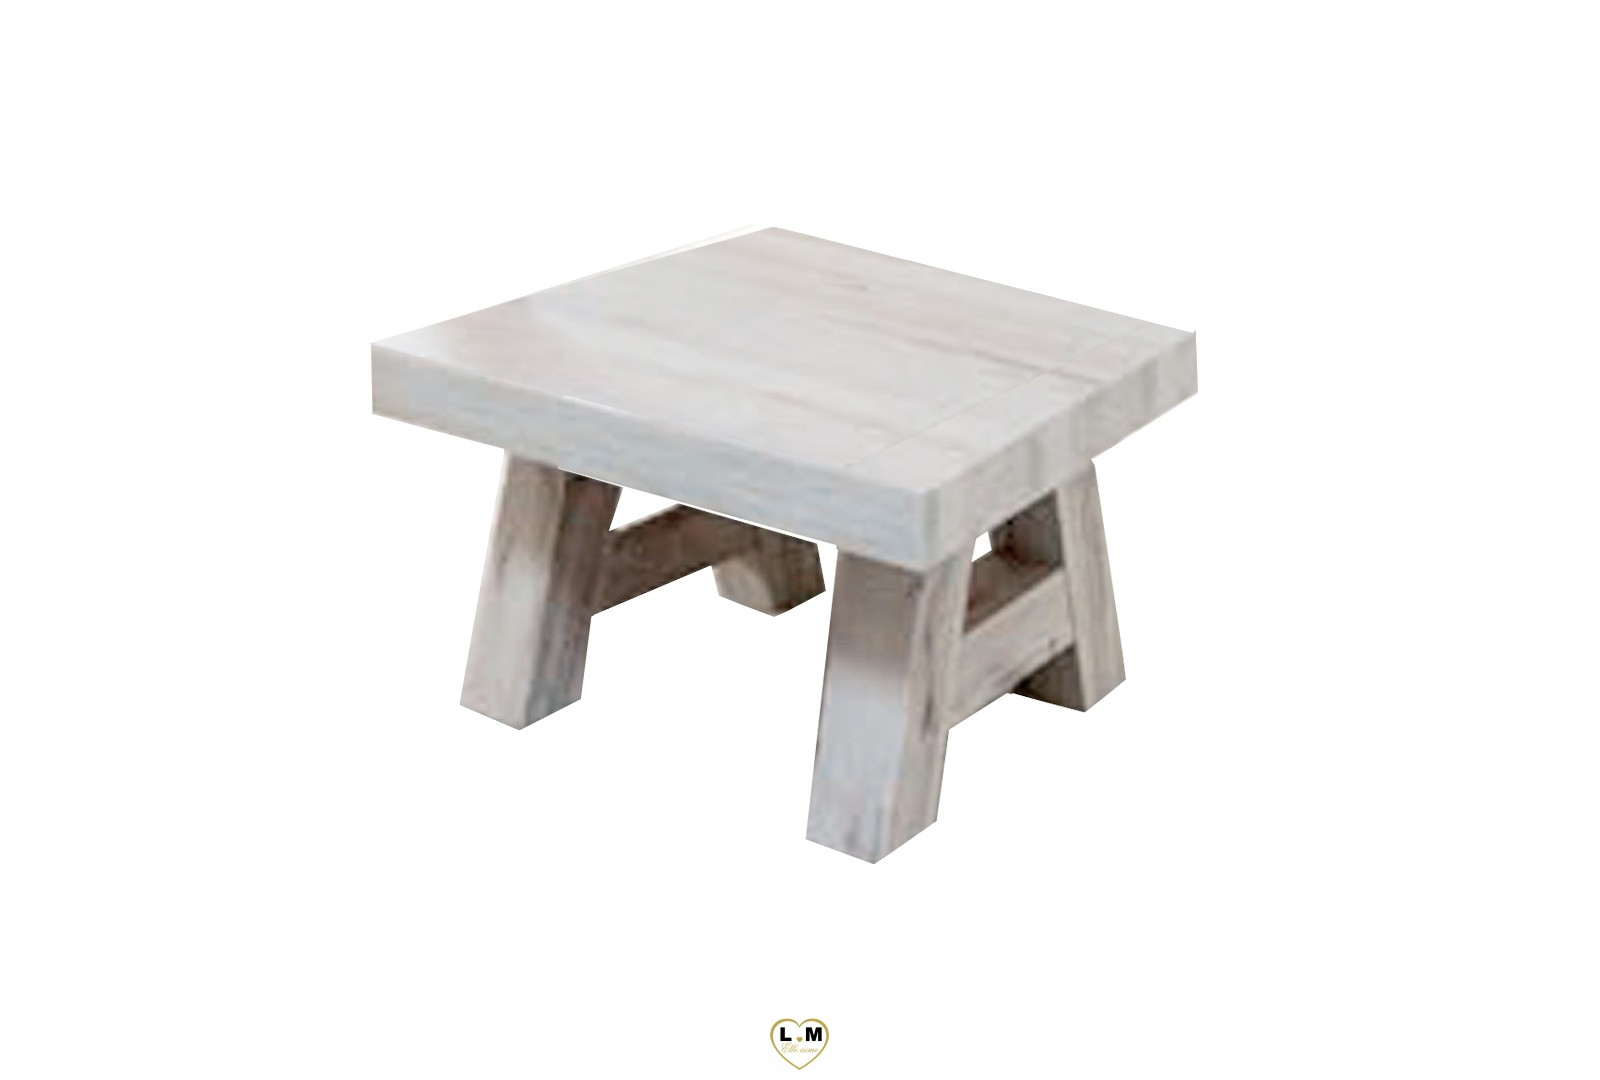 Emejing table salle a manger blanc vieilli pictures for Table basse scandinave blanc laque